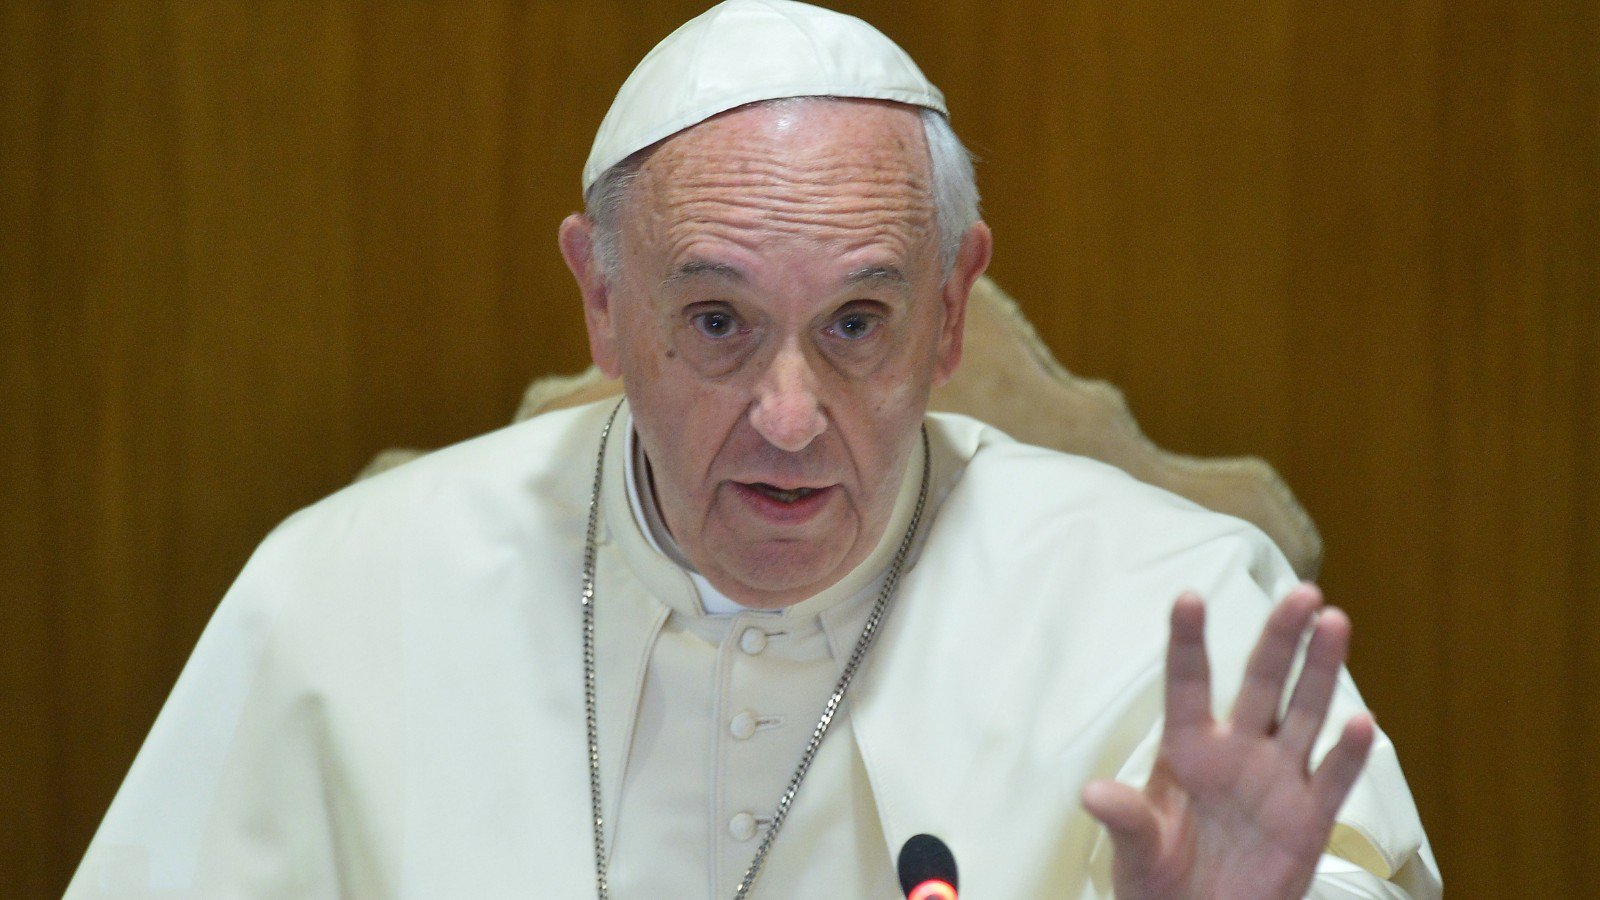 Pope Francis to rebuild churches destroyed by Boko Haram